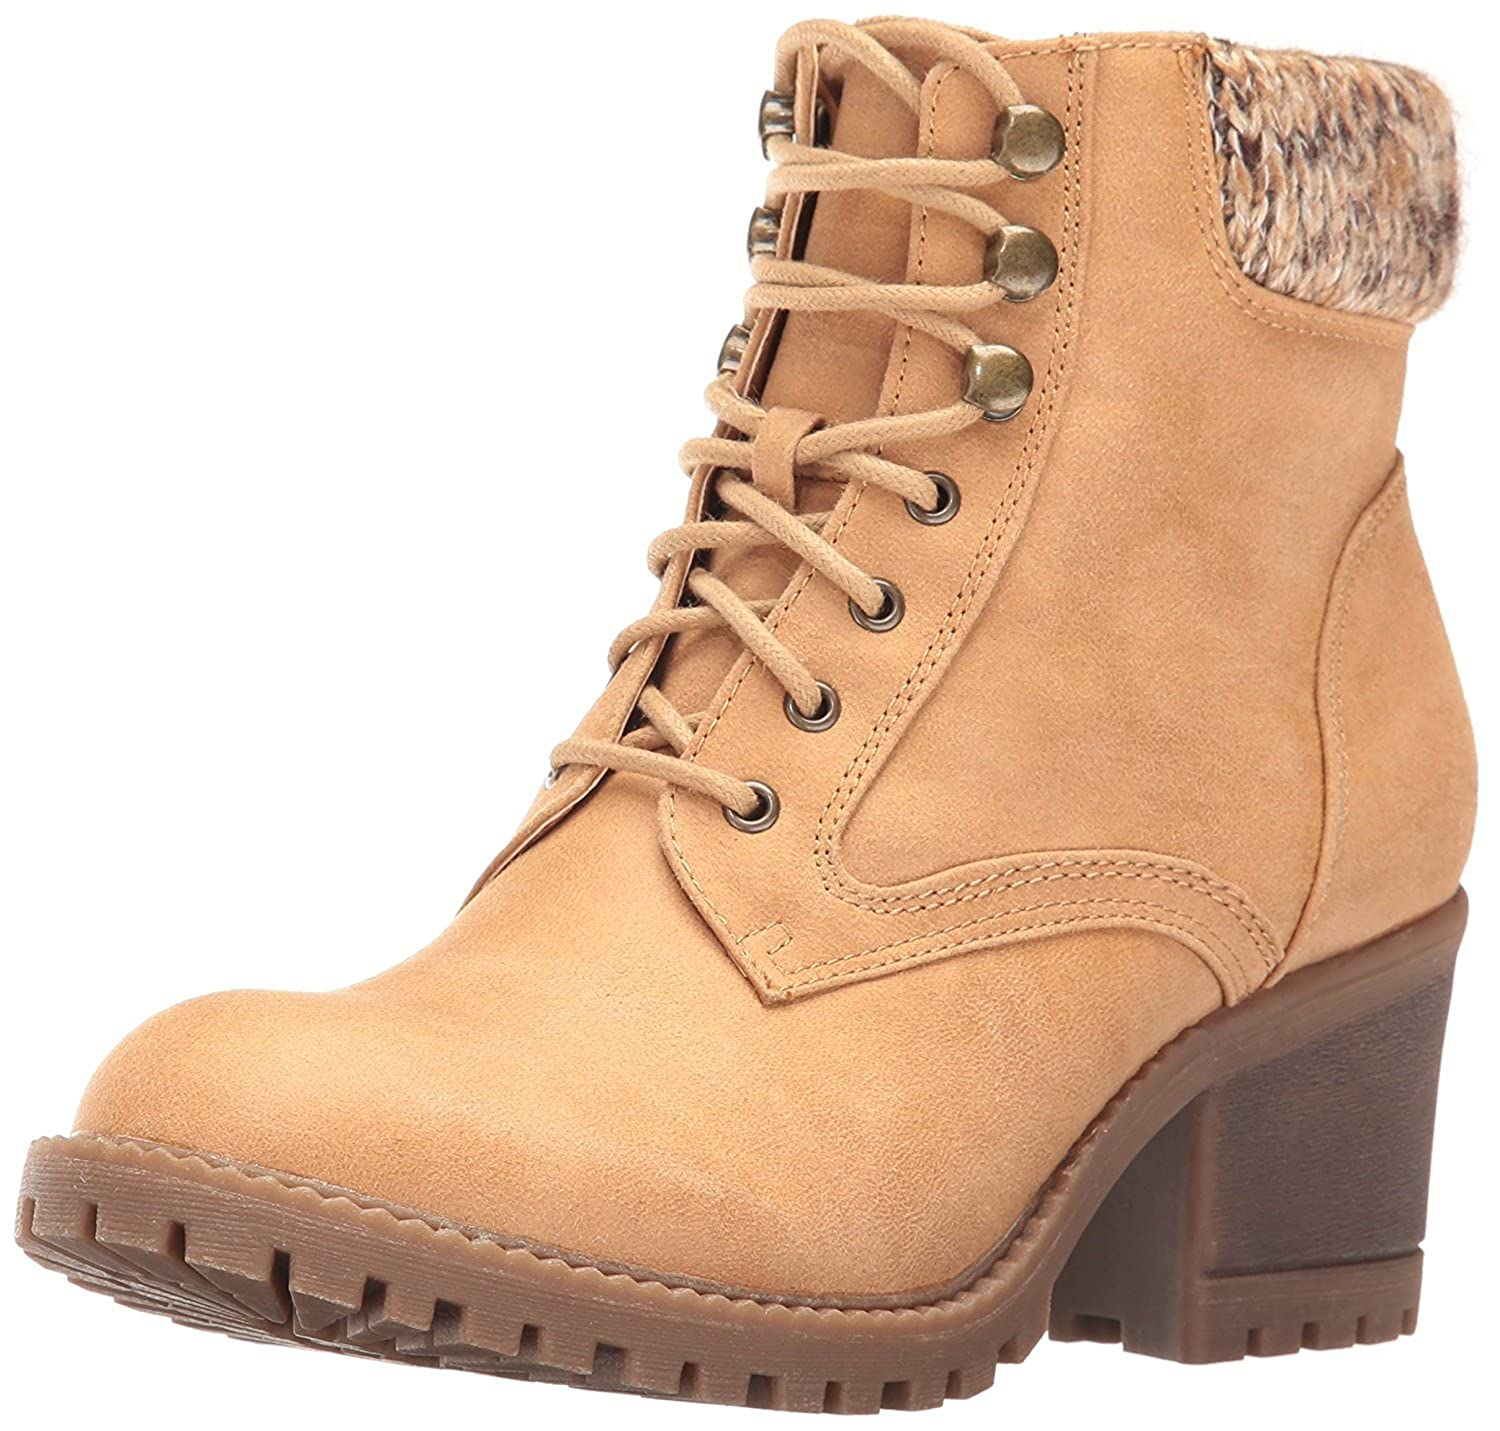 Cliffs by White Mountain Womens Closed Tulane Leather Closed Womens Toe Wheat Size 10.0 B07CCKK7PN Parent f57080